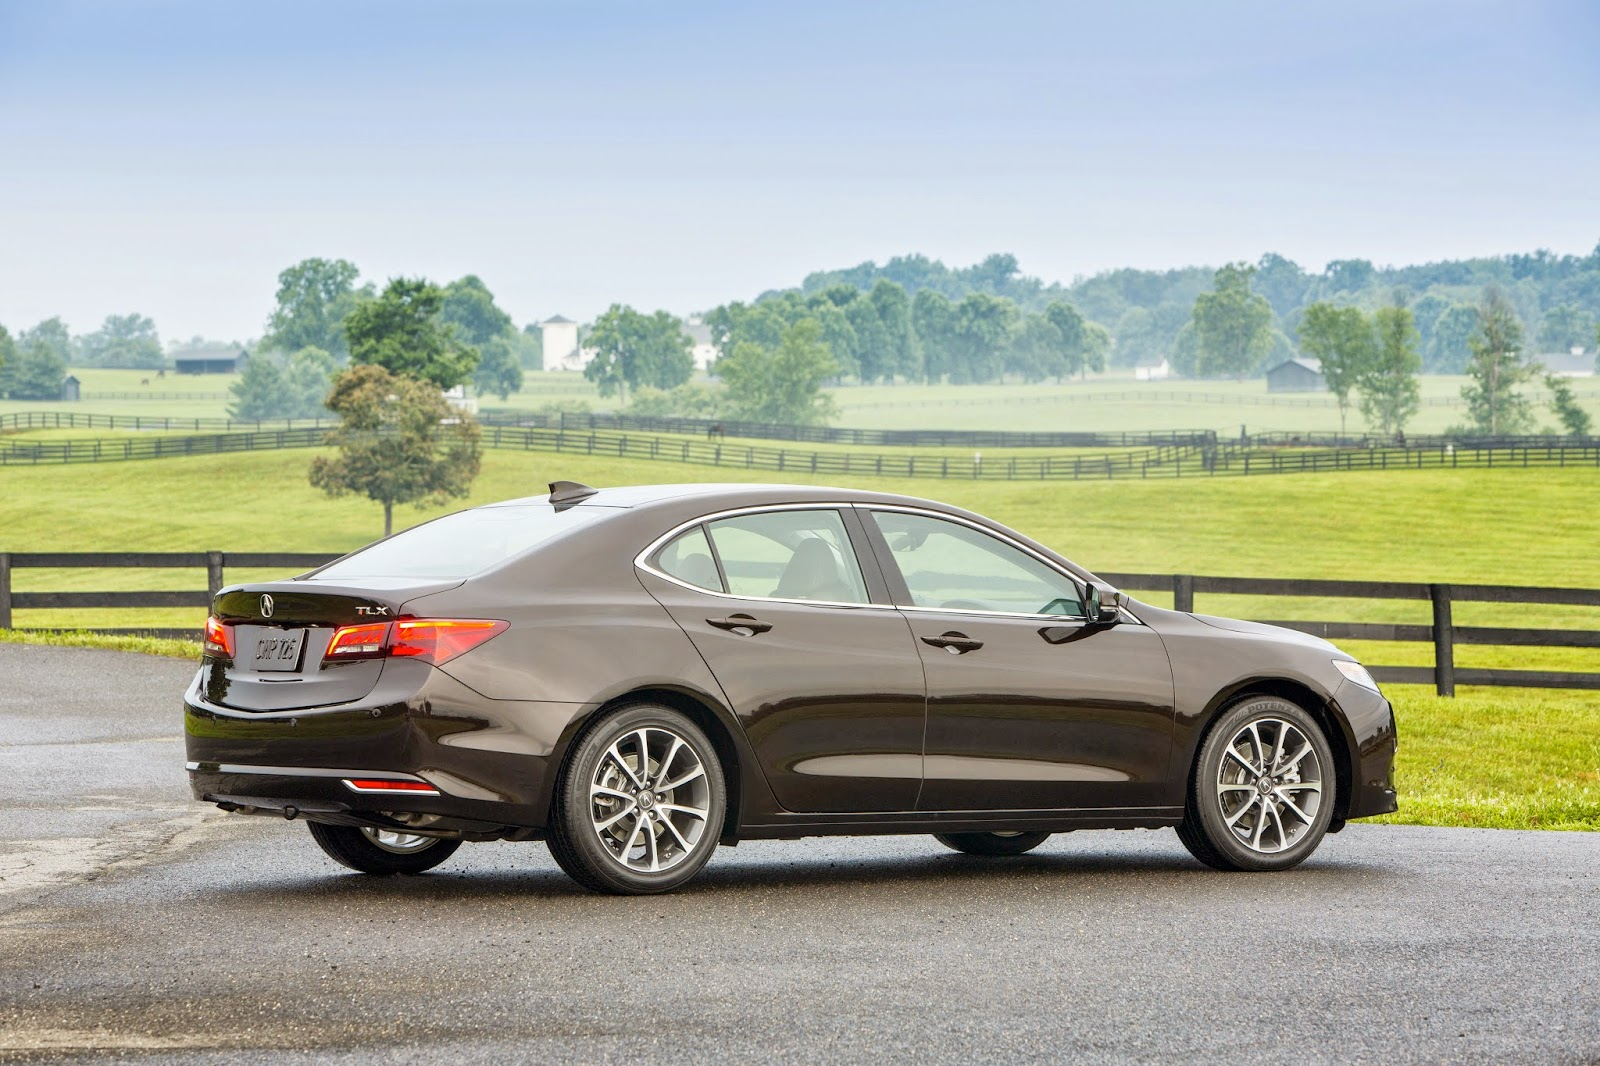 Rear 3/4 view of 2015 Acura TLX